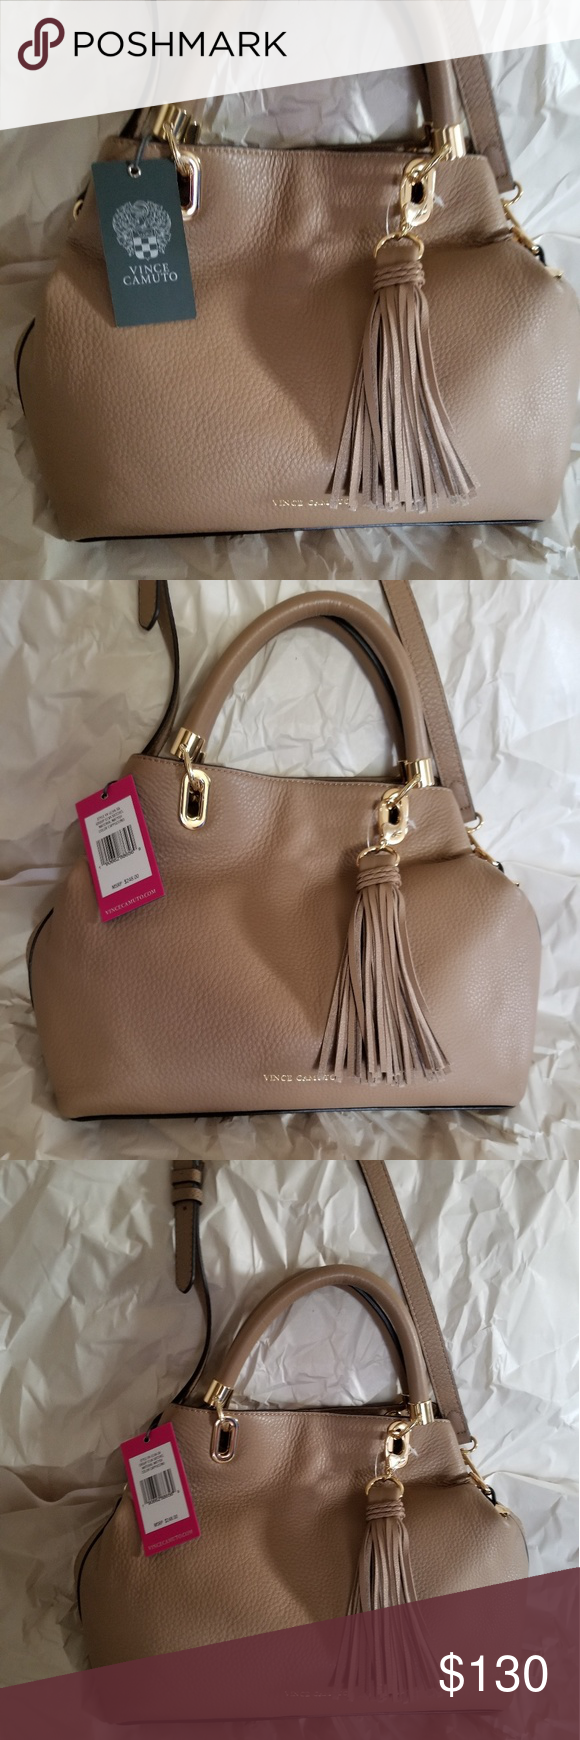 5a3dee2f7 Vince Camuto elva satchel New with tags and authentic Vince Camuto Bags  Satchels